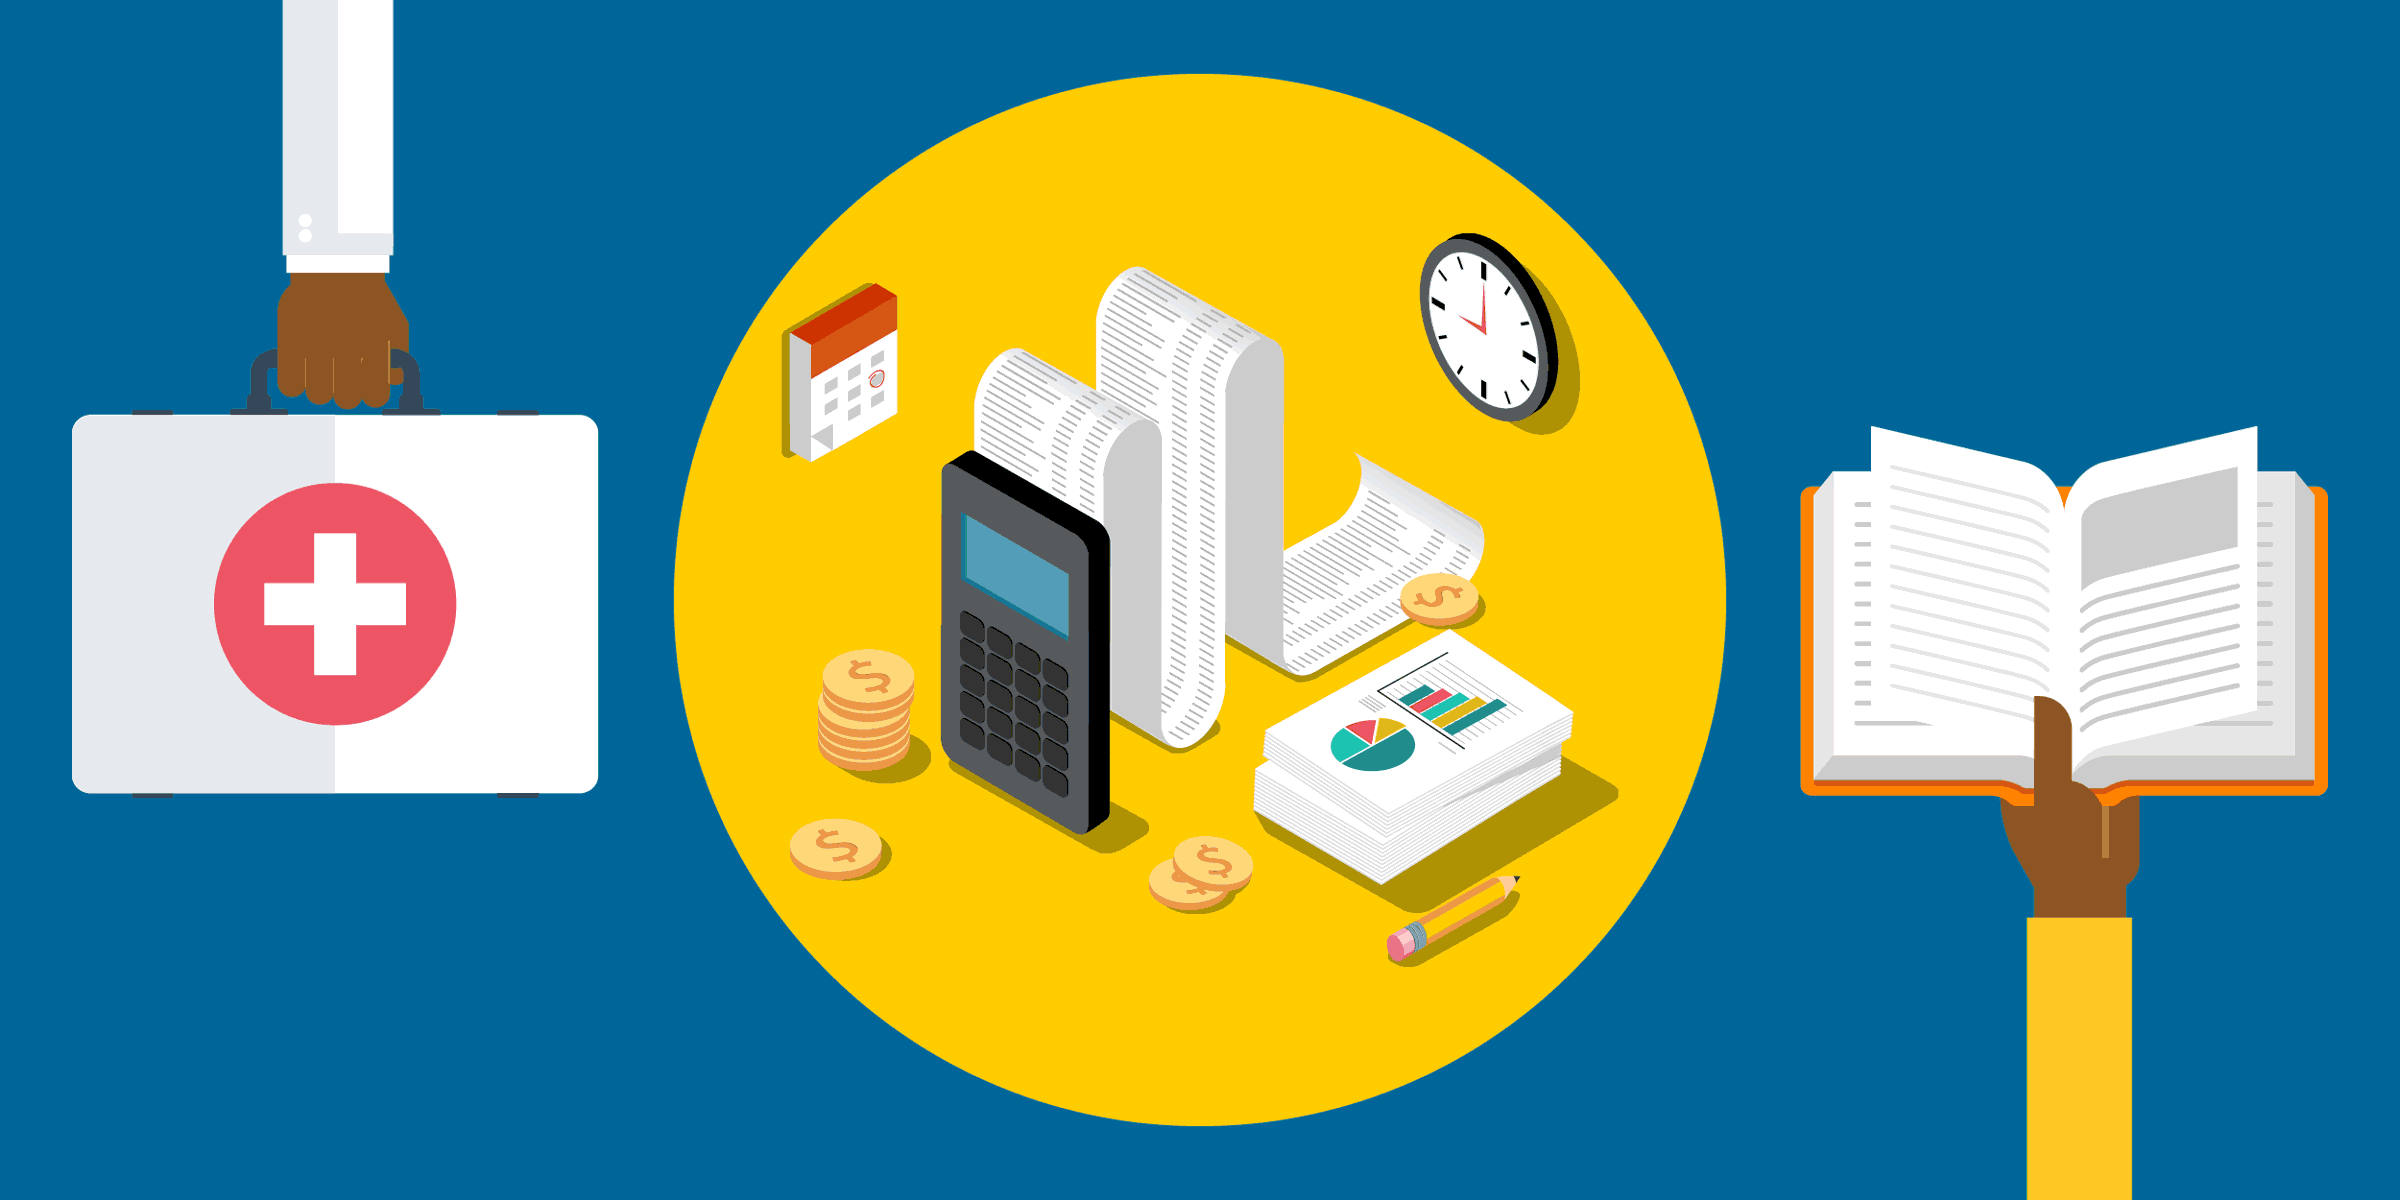 illustration of a person holding a first aid kit,  a person holding a book, and an adding machine next to a stack of printed graphs, representing how intuit quickbooks nonprofit edition helps fej build sustainable communities